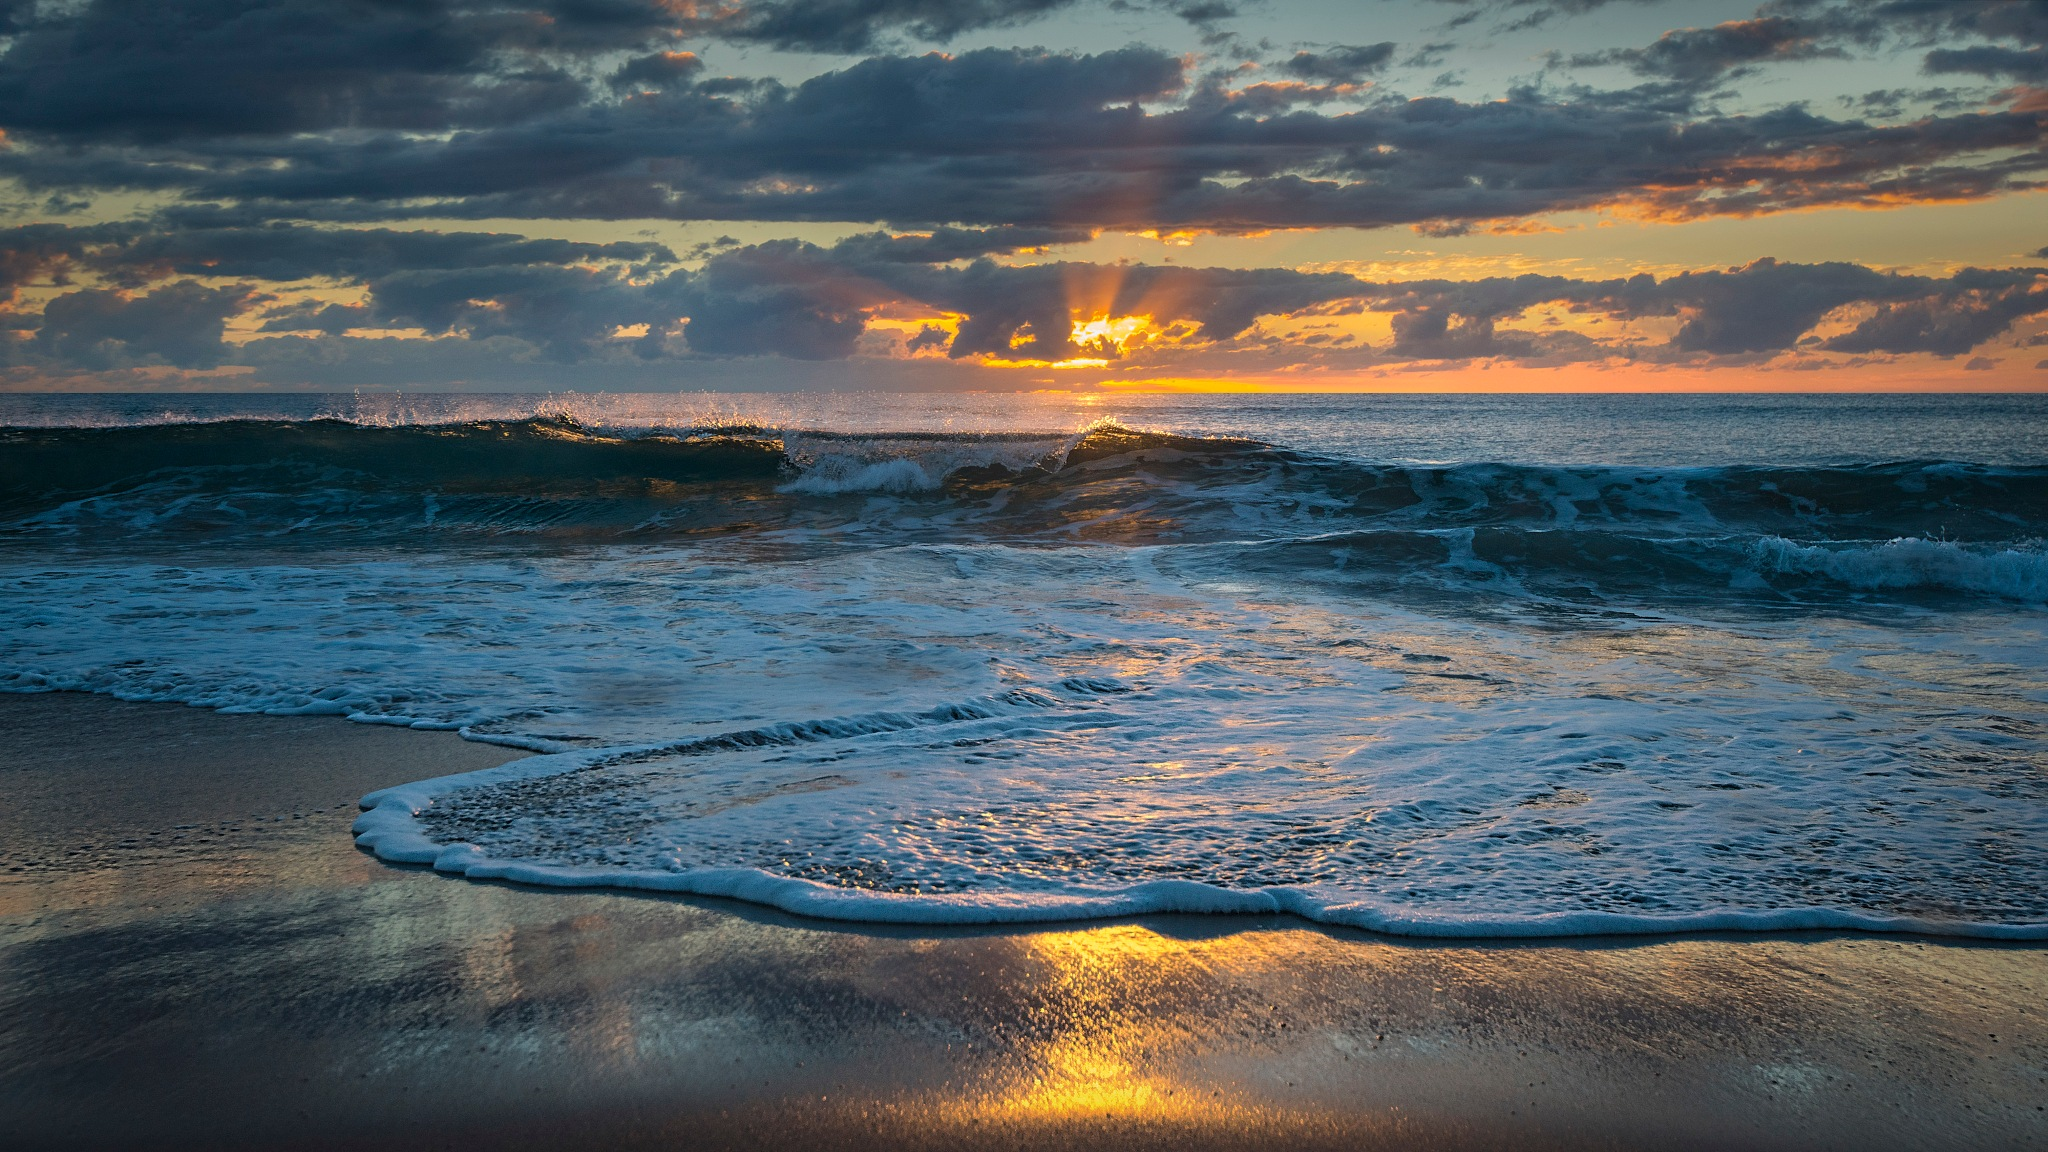 Breaking wave at sunrise. (best viewed large) by EmanuelPapamanolis